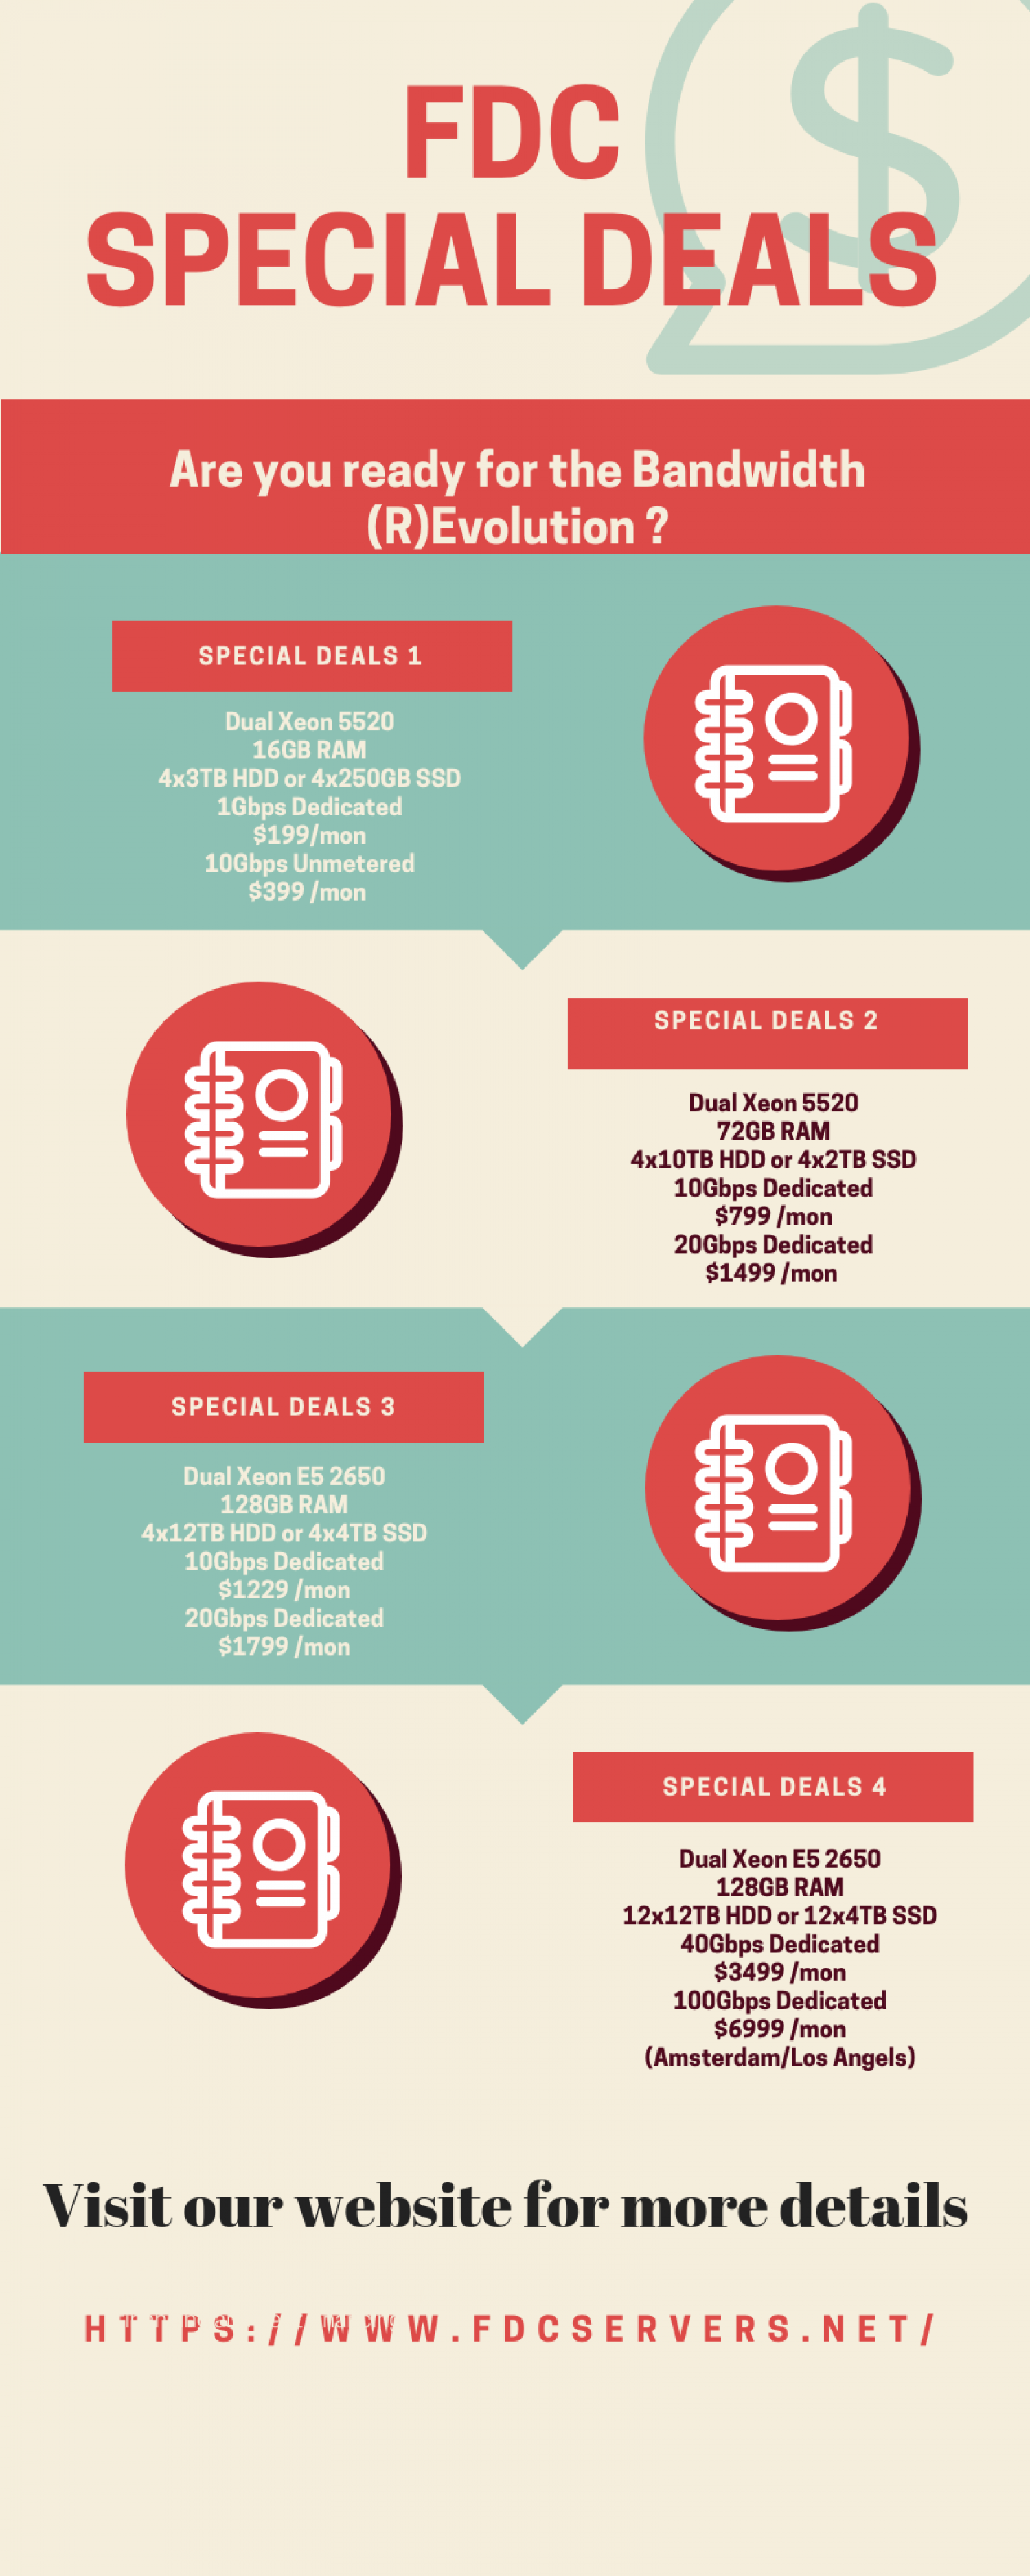 FDC Servers - Special Deals Infographic